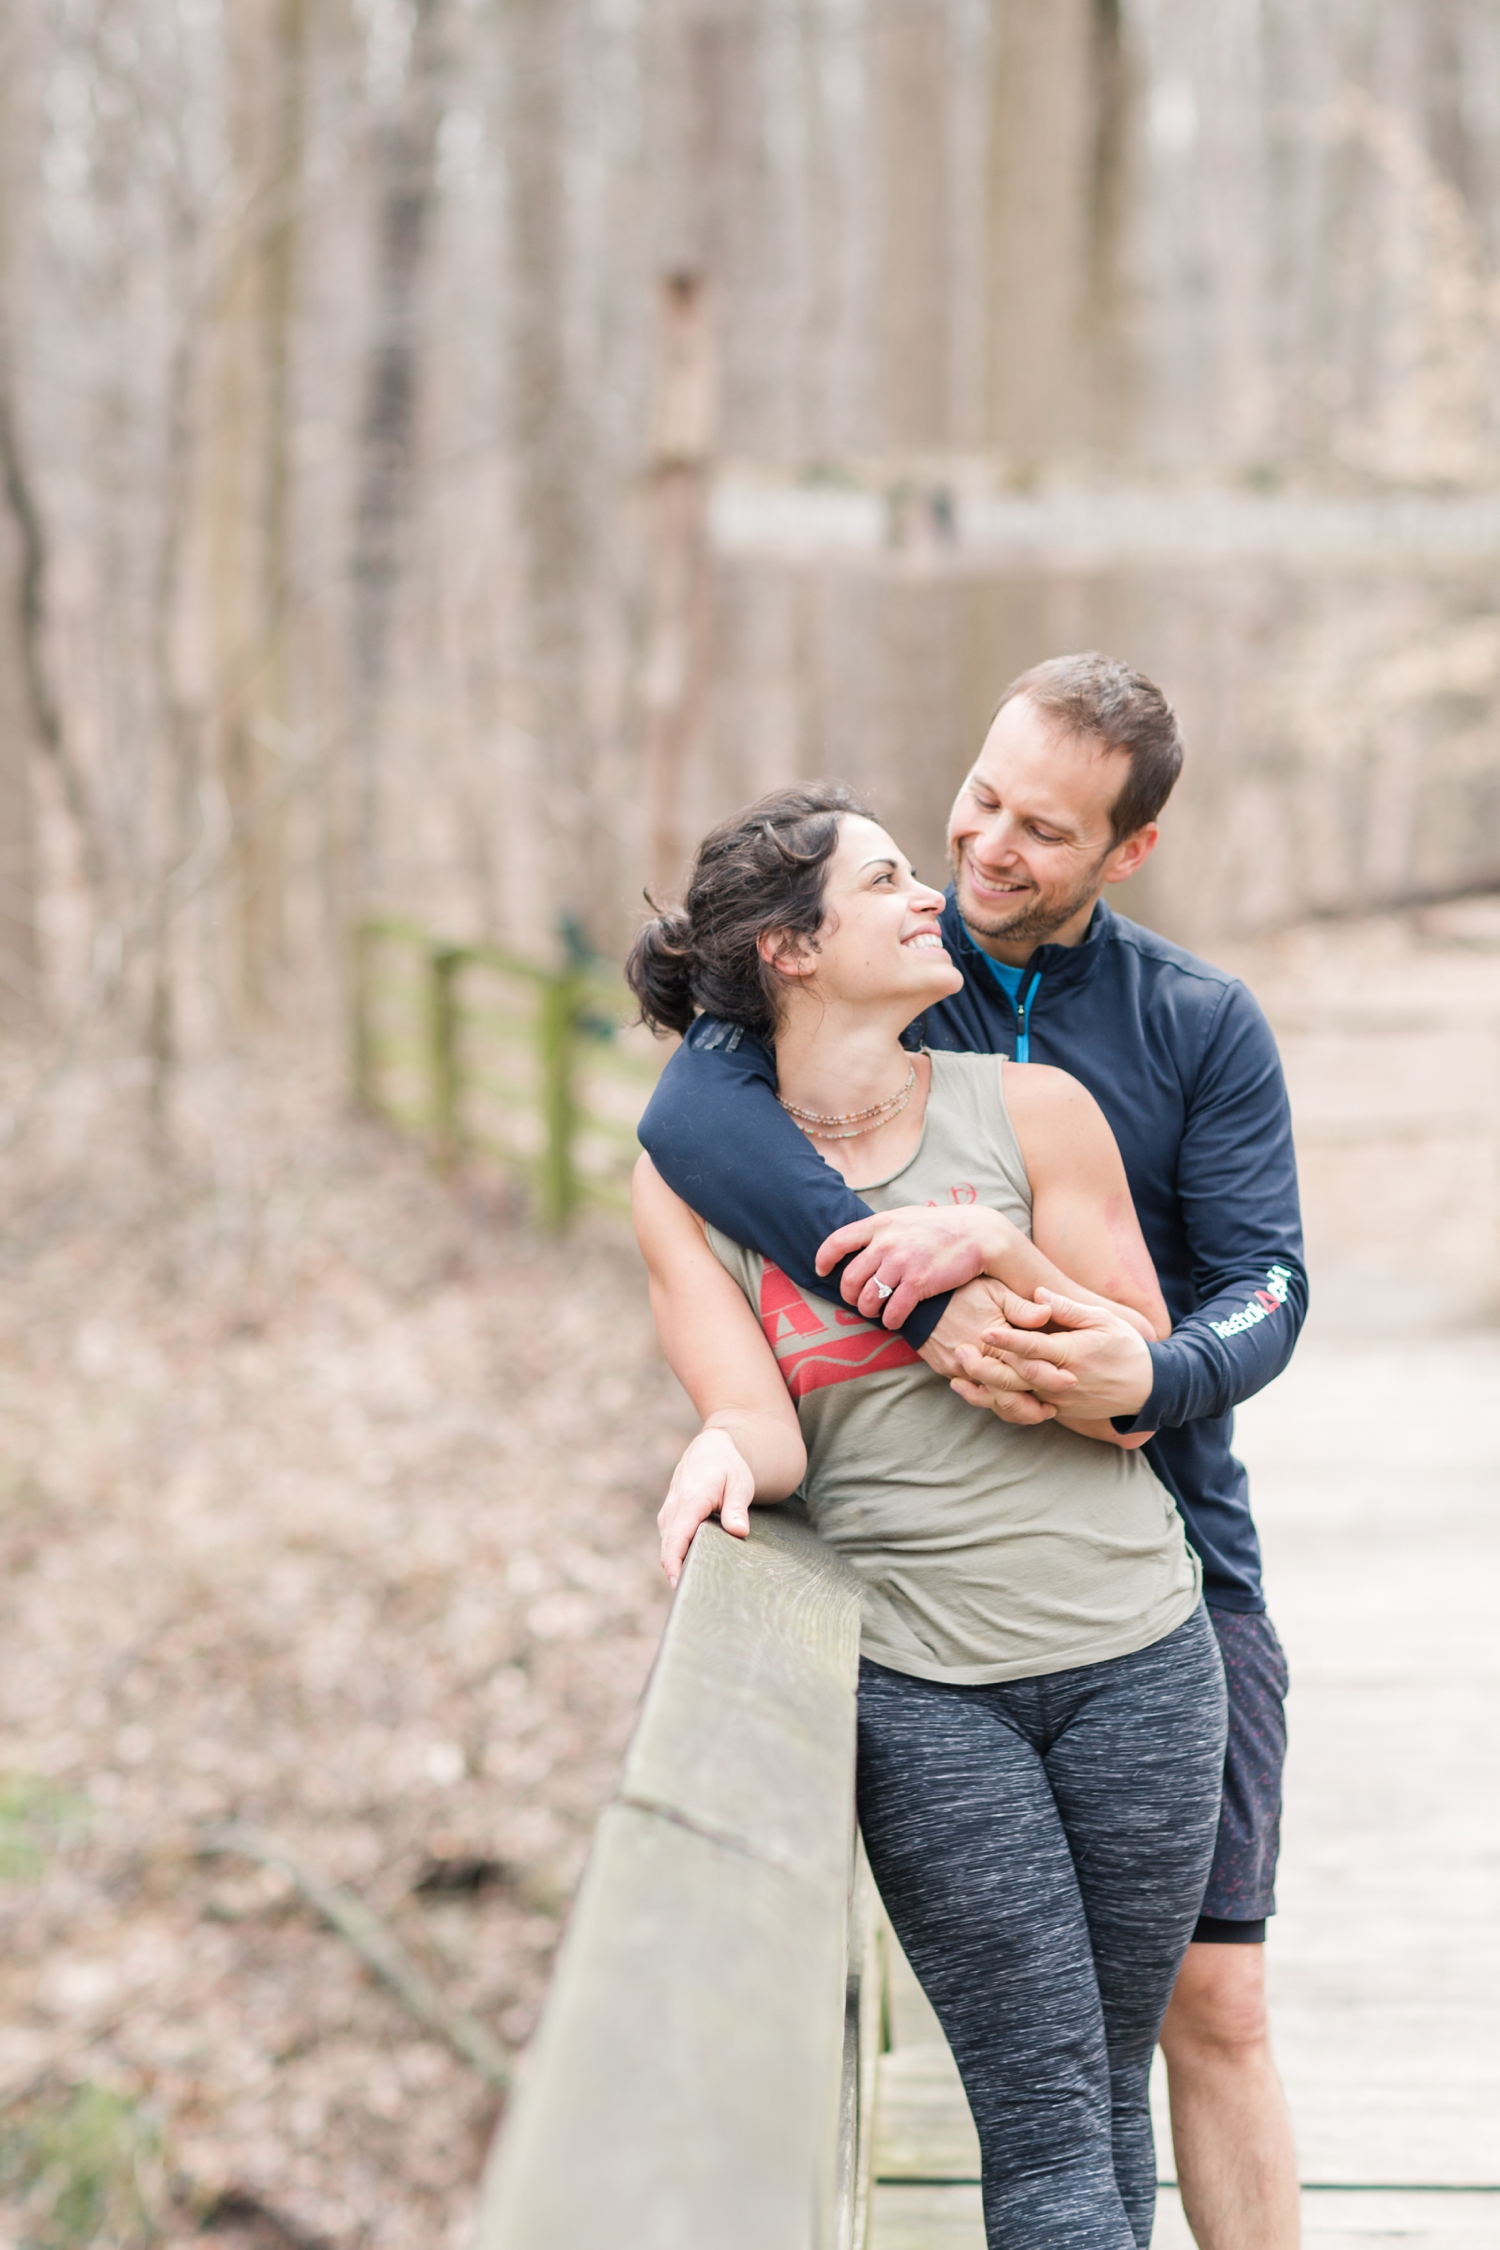 Matty & Angel Proposal Engagement-225_baltimore-maryland-proposal-and-engagement-photographer-oregon-ridge-engagement-anna-grace-photography-photo.jpg